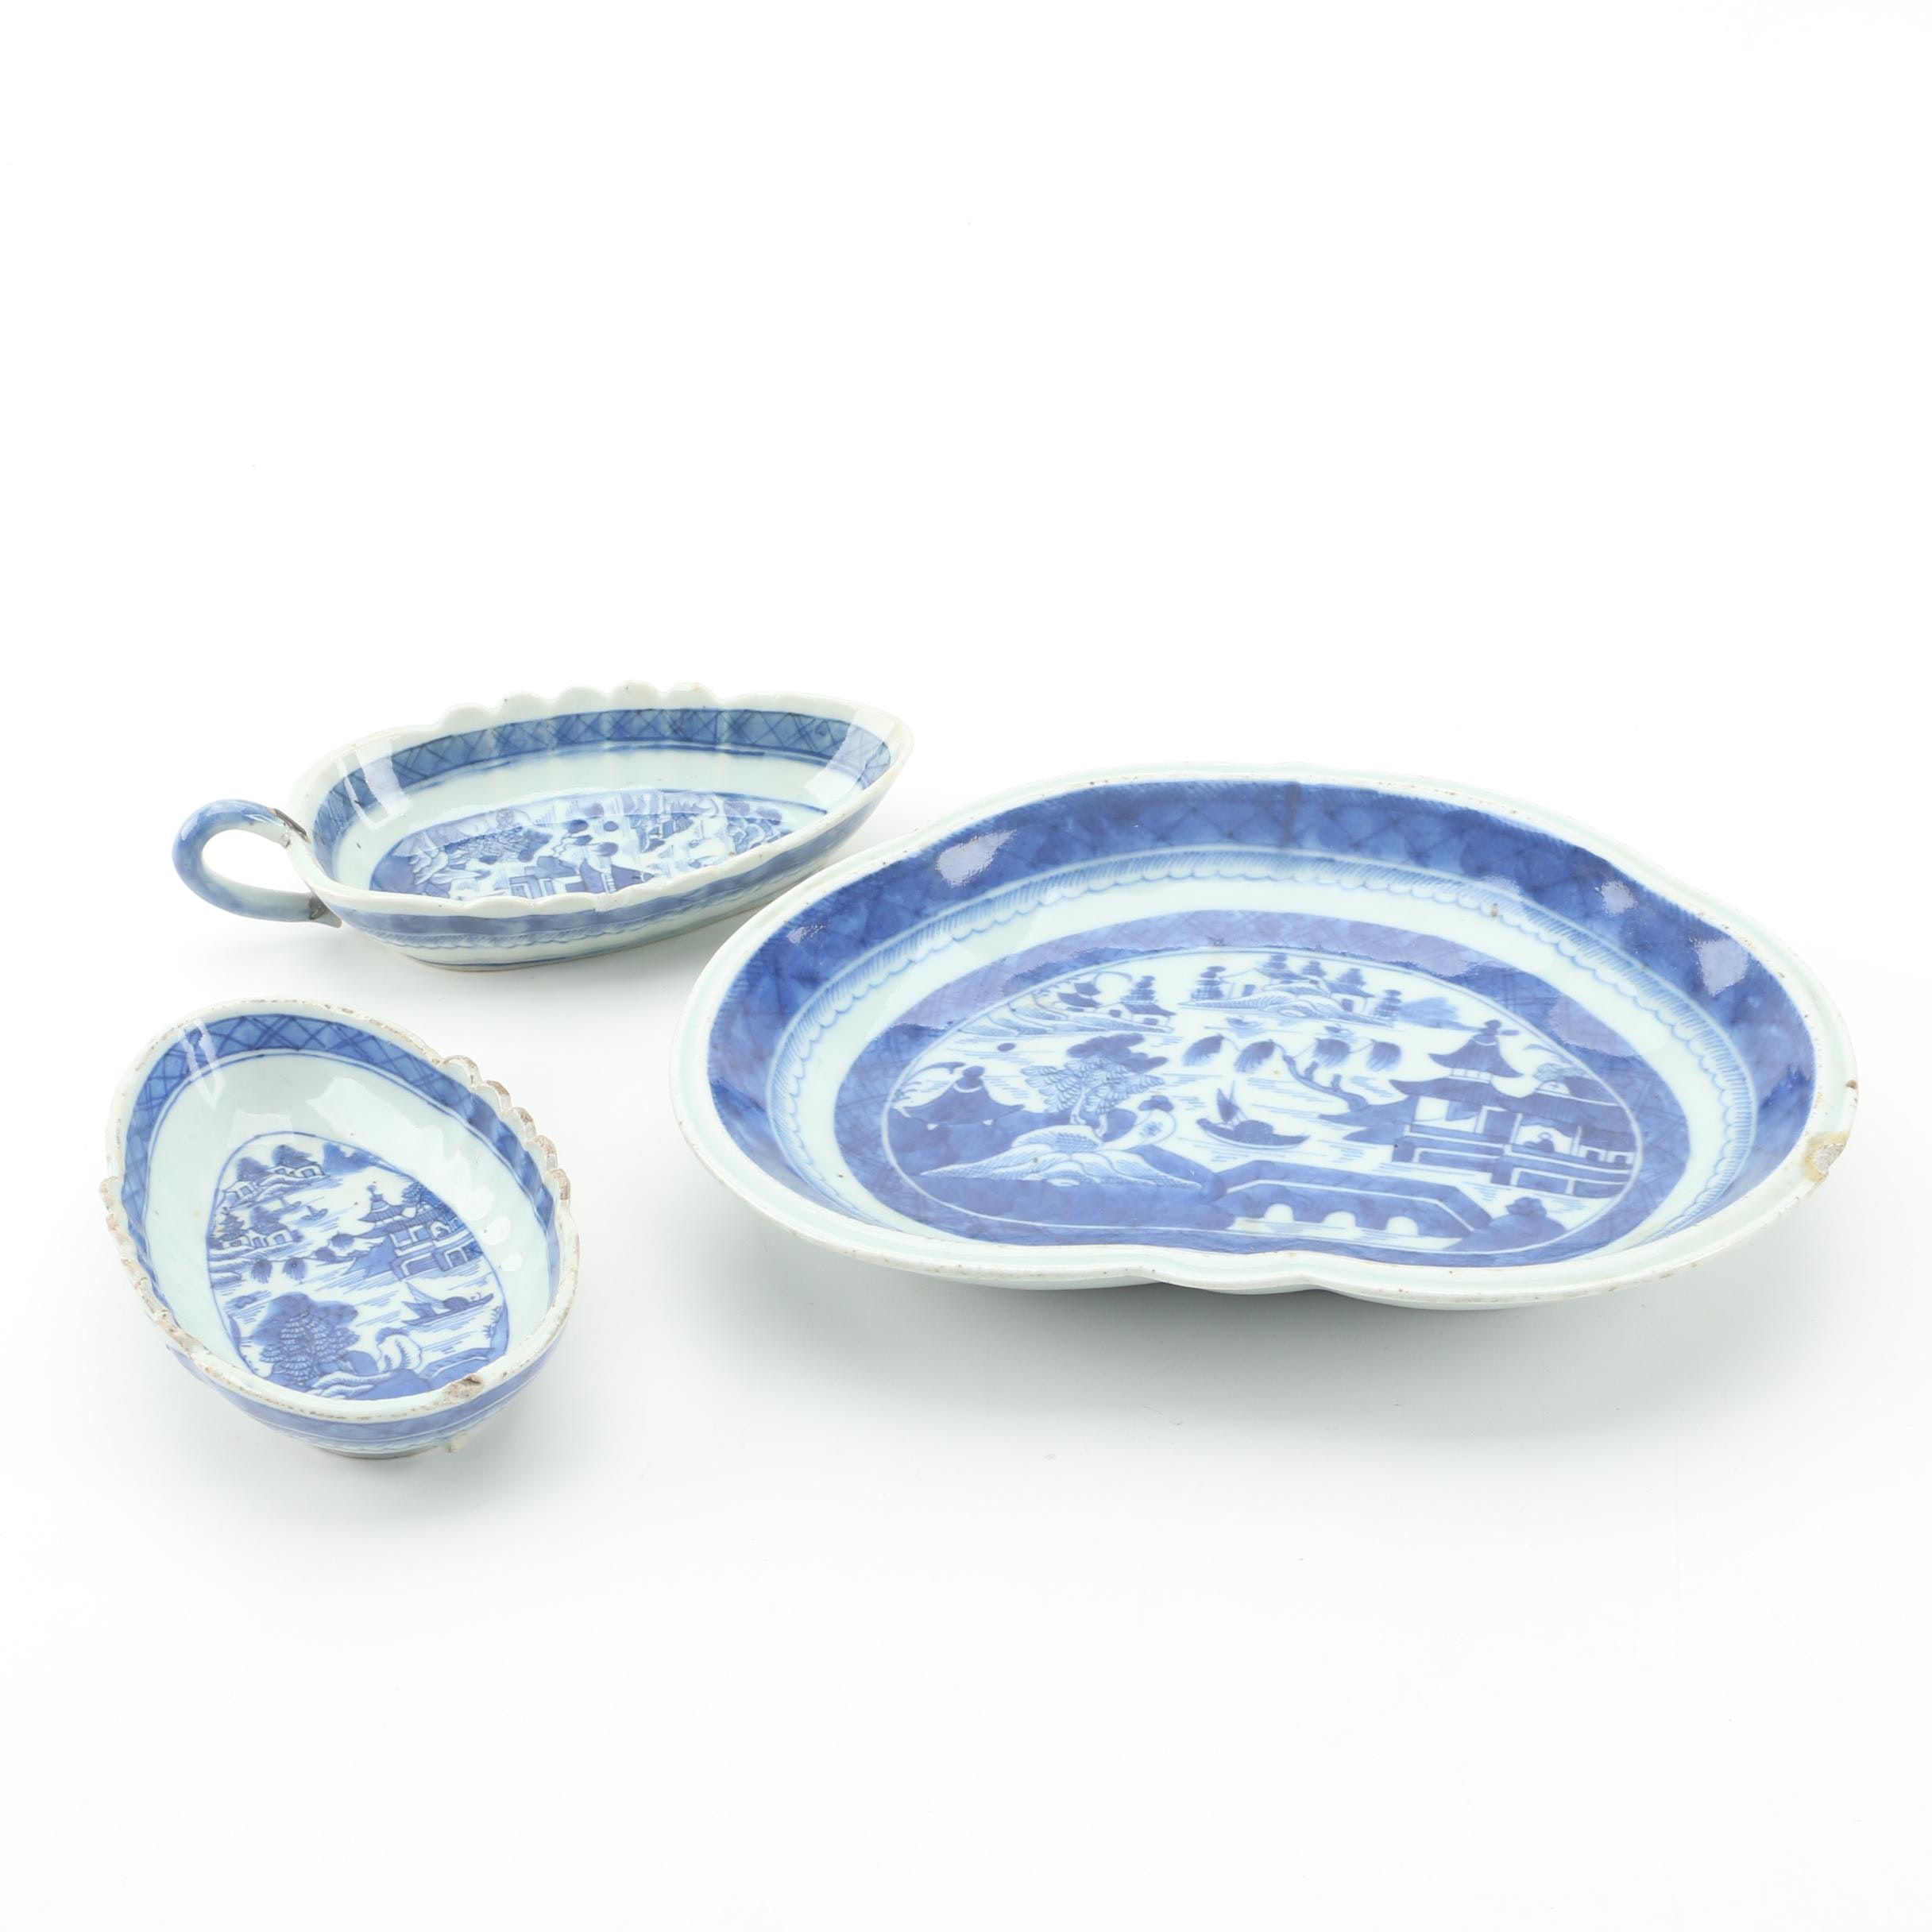 Antique 19th Century Chinese Canton Style Porcelain Serveware